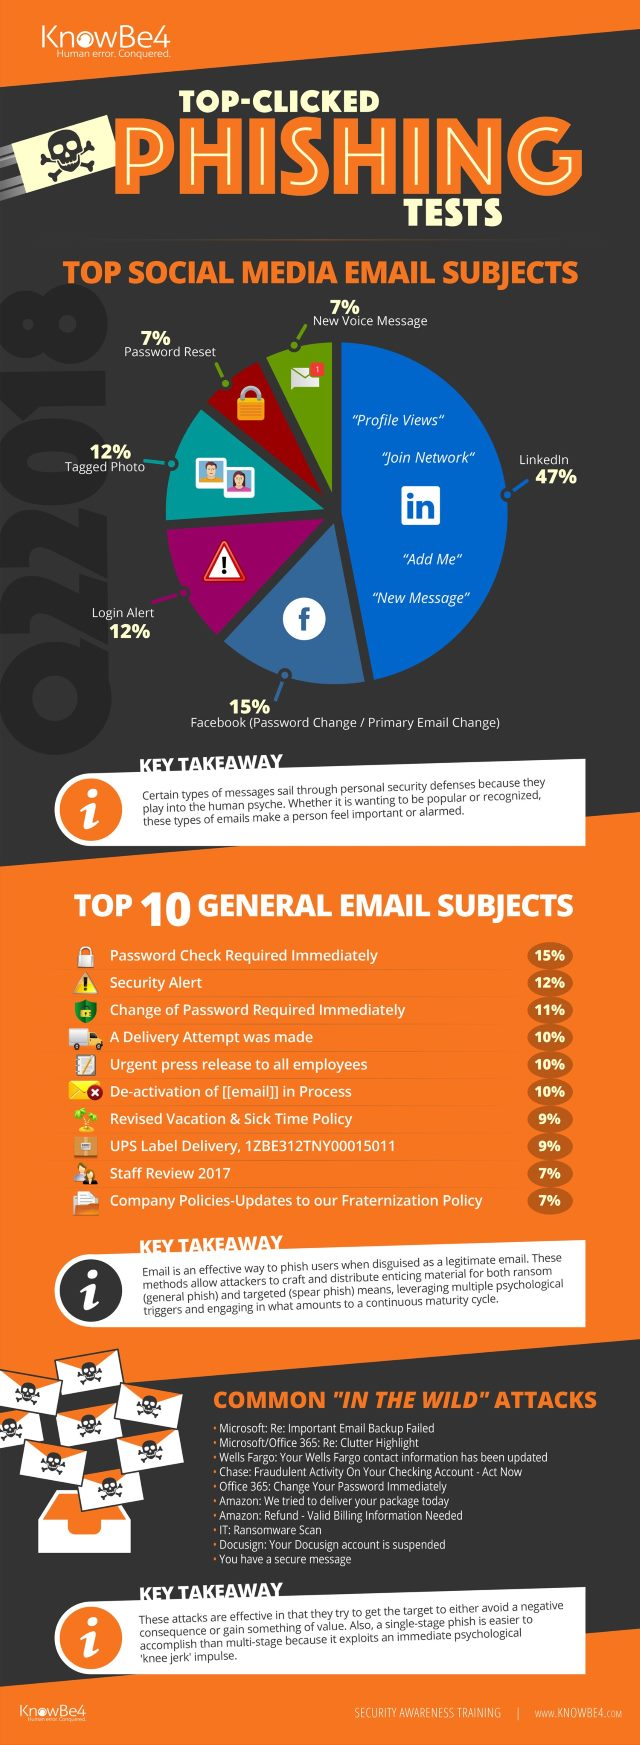 KnowBe4_Phishing_InfoGraphic_Q22018